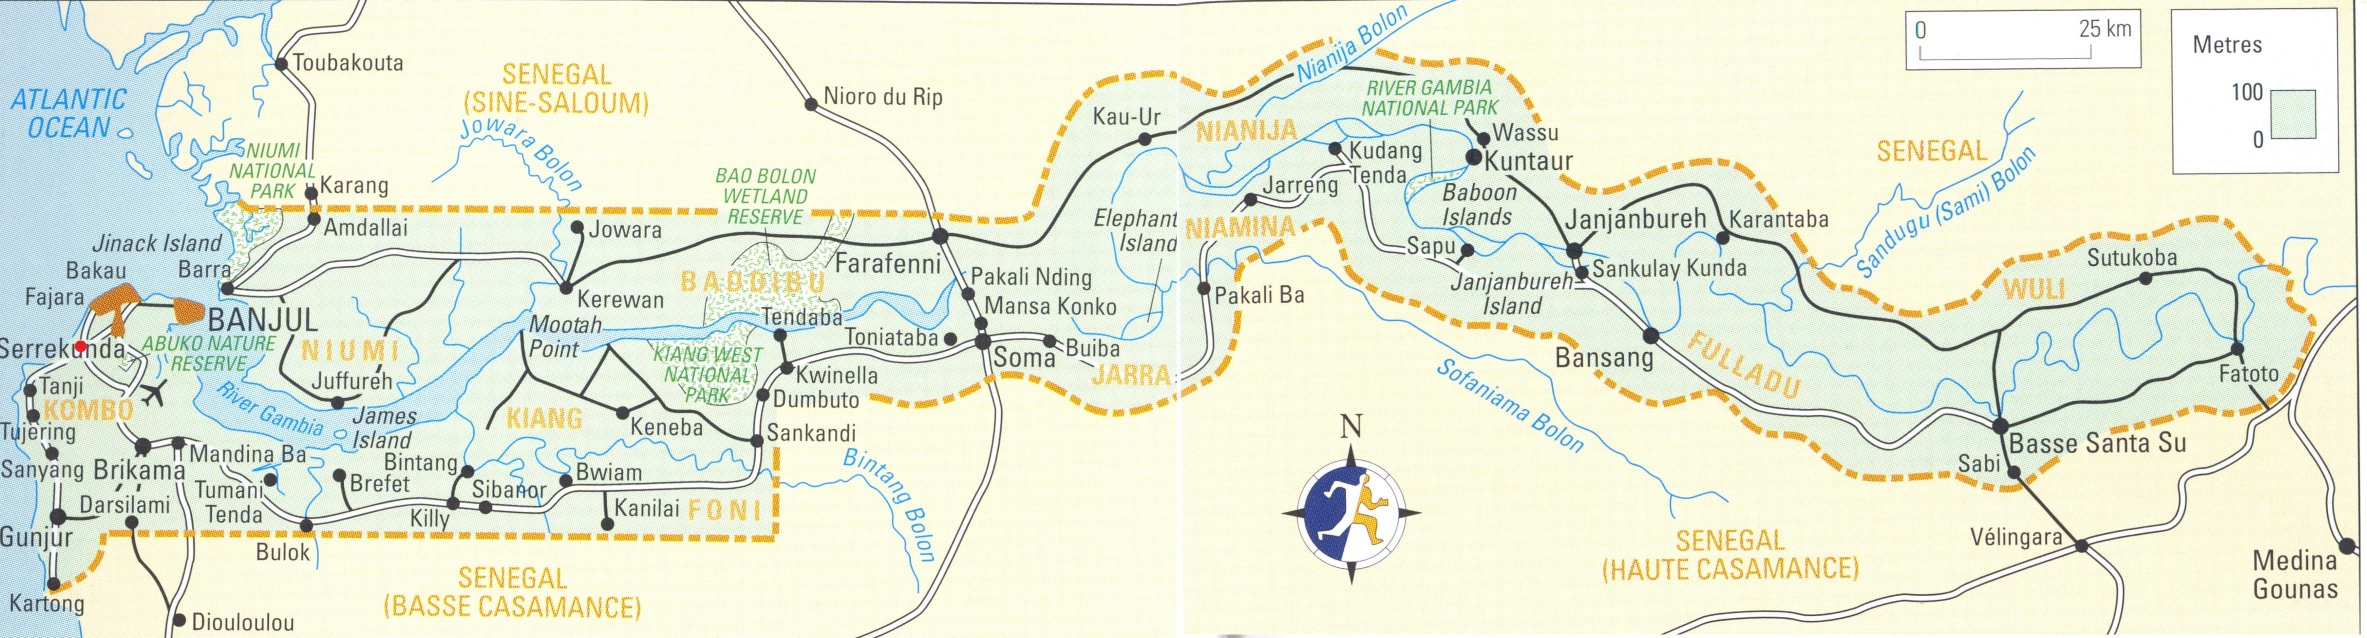 Large detailed map of Gambia with cities